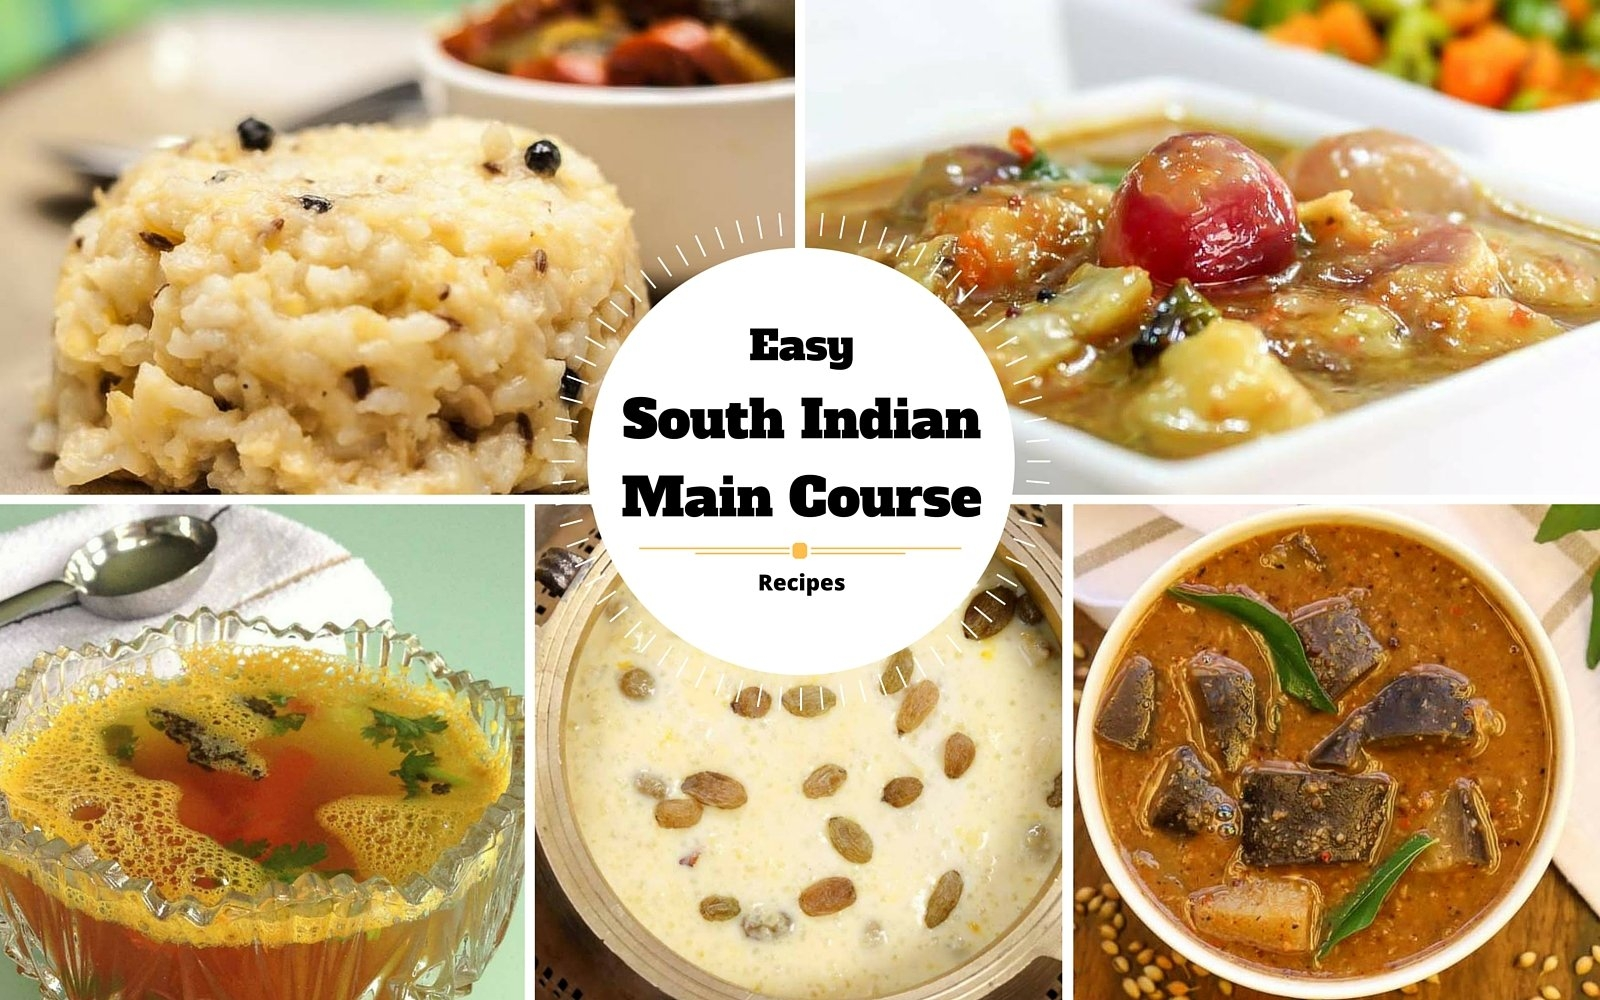 Easy to make south indian main course recipes for beginners by easy to make south indian main course recipes for beginners forumfinder Image collections